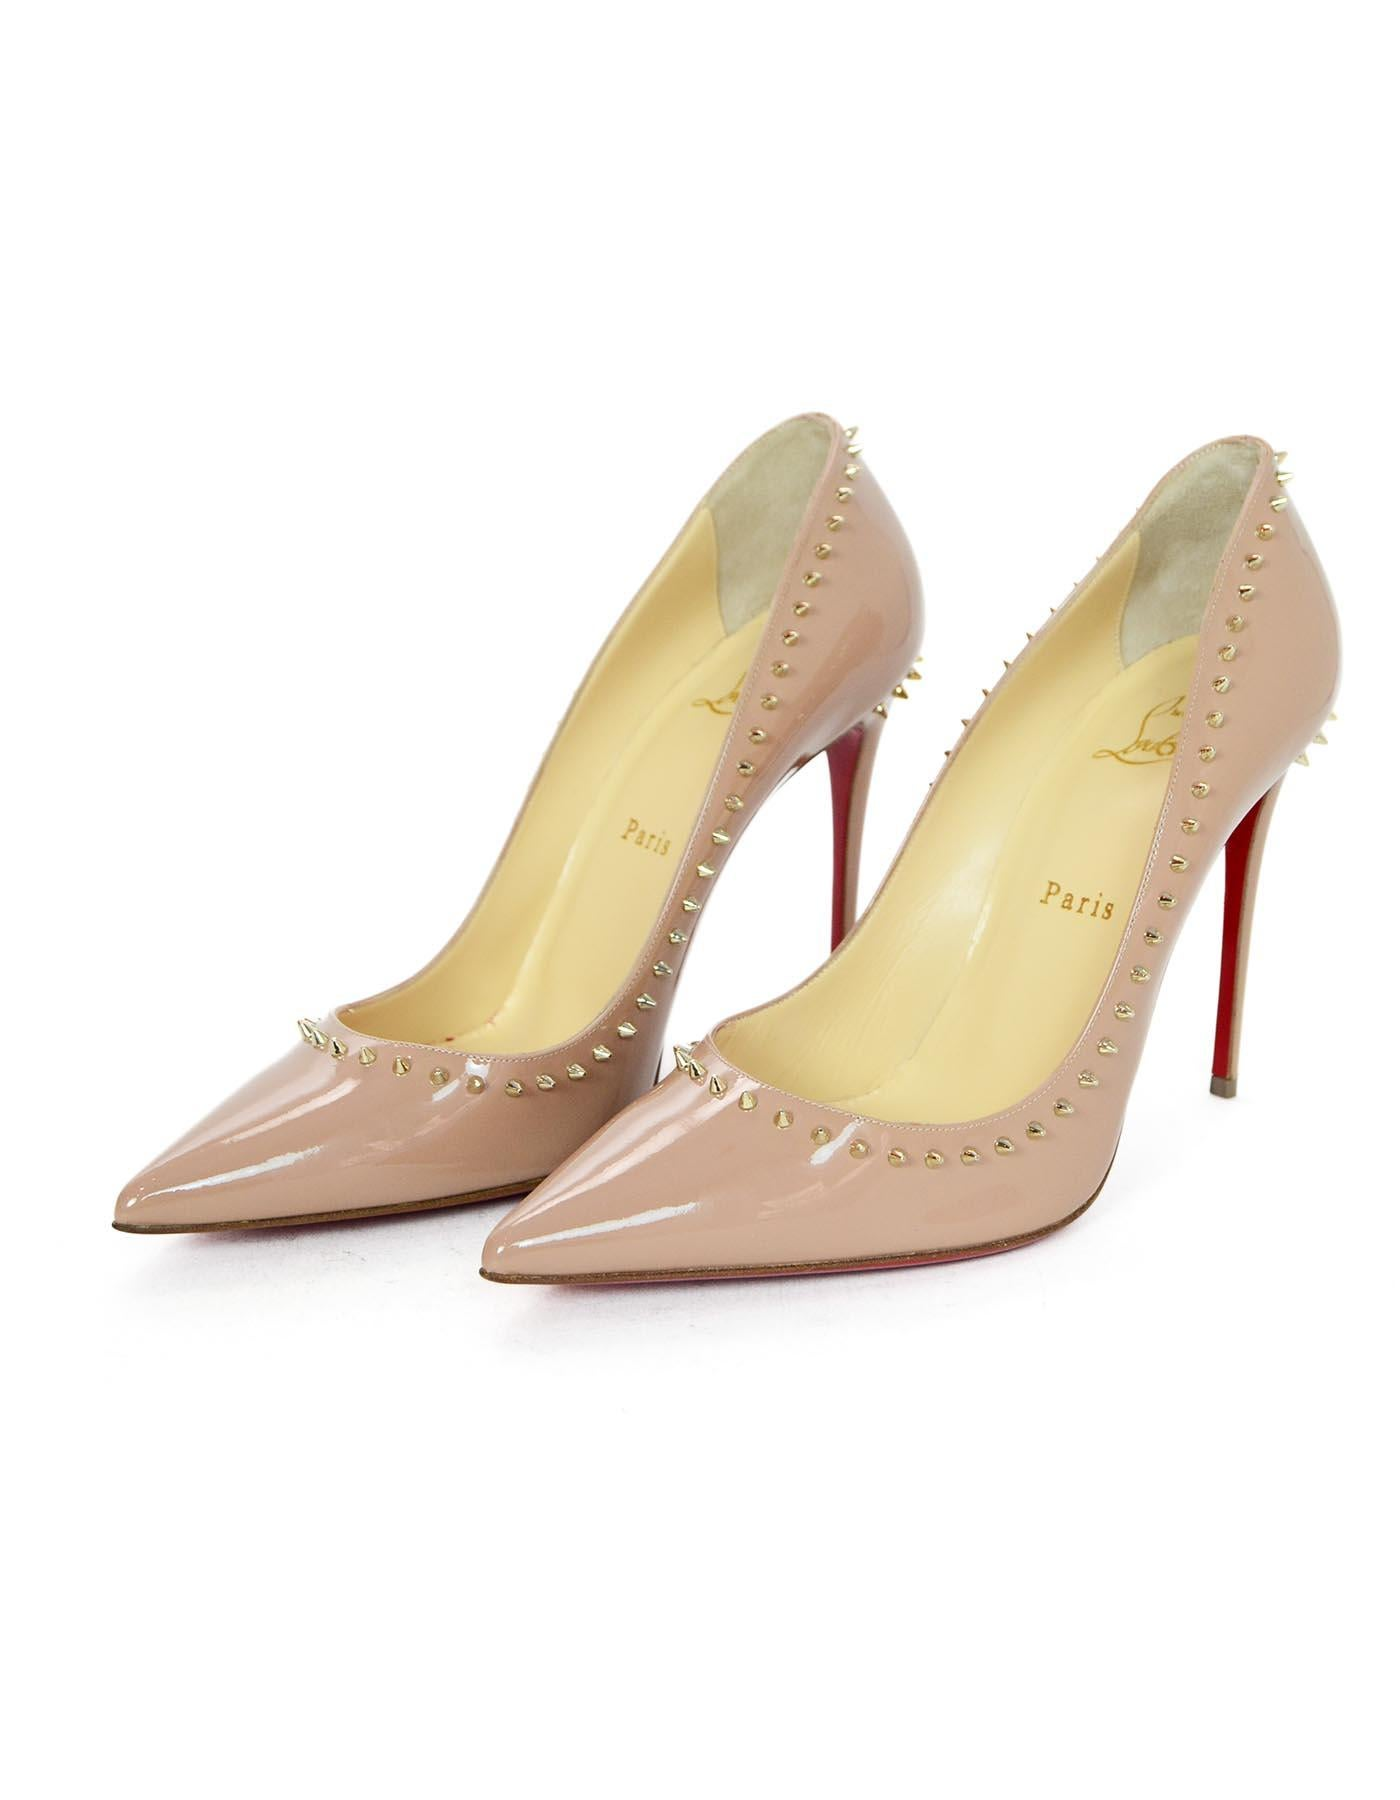 7e07ea75cc18 Christian Louboutin Nude Patent Leather Studded Anjalina 100mm Pumps Sz  39.5 For Sale at 1stdibs